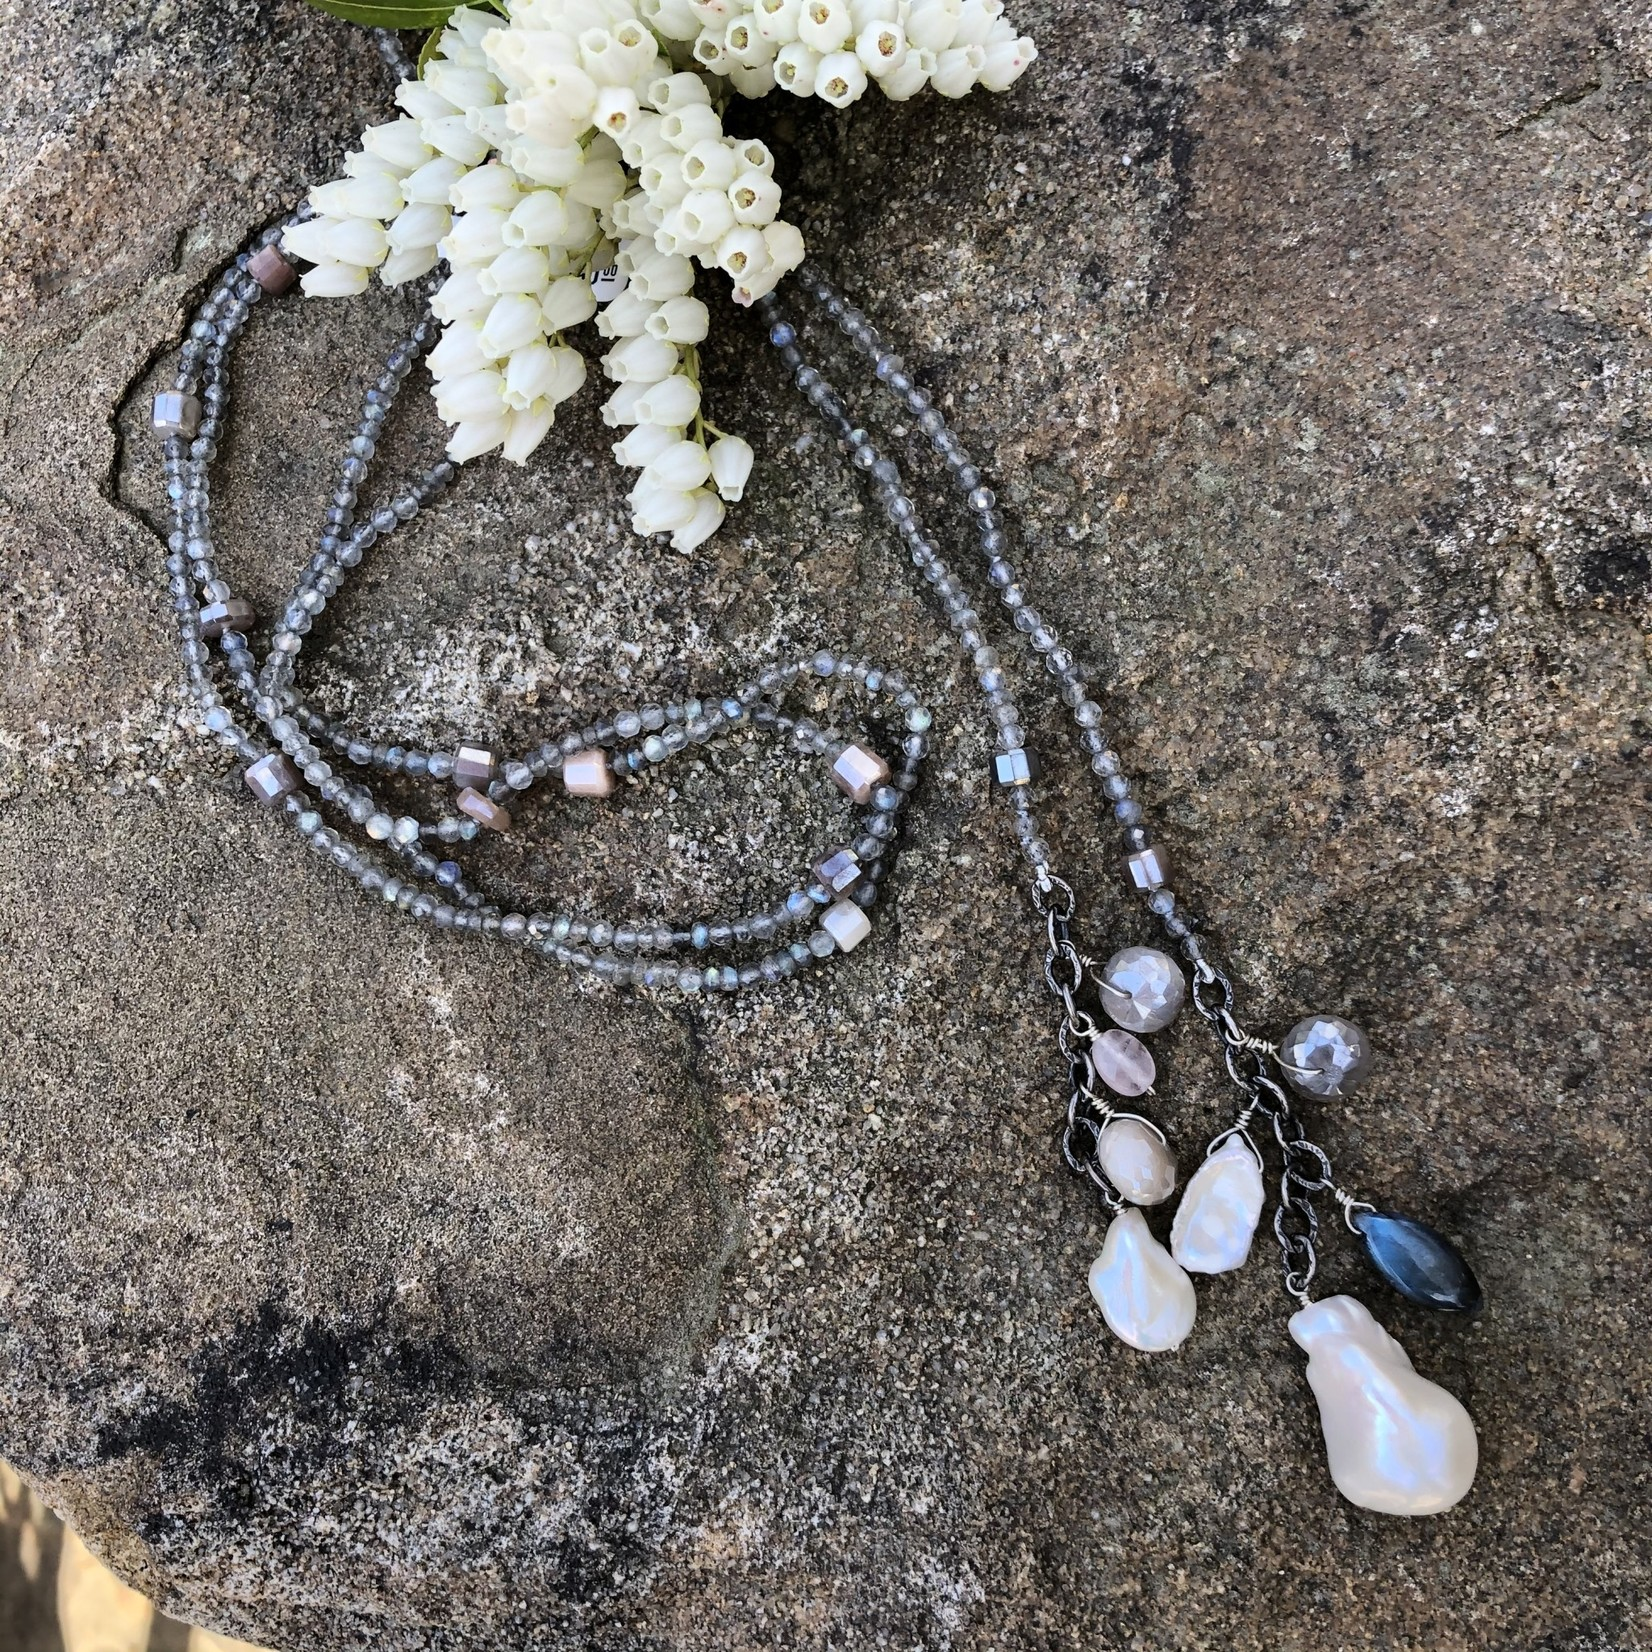 SoMe So Me Designs | Draped in Beauty Necklace. 50 inches long with Baroque Pearls, labradorite, Silverite, Moonstone, Quartz